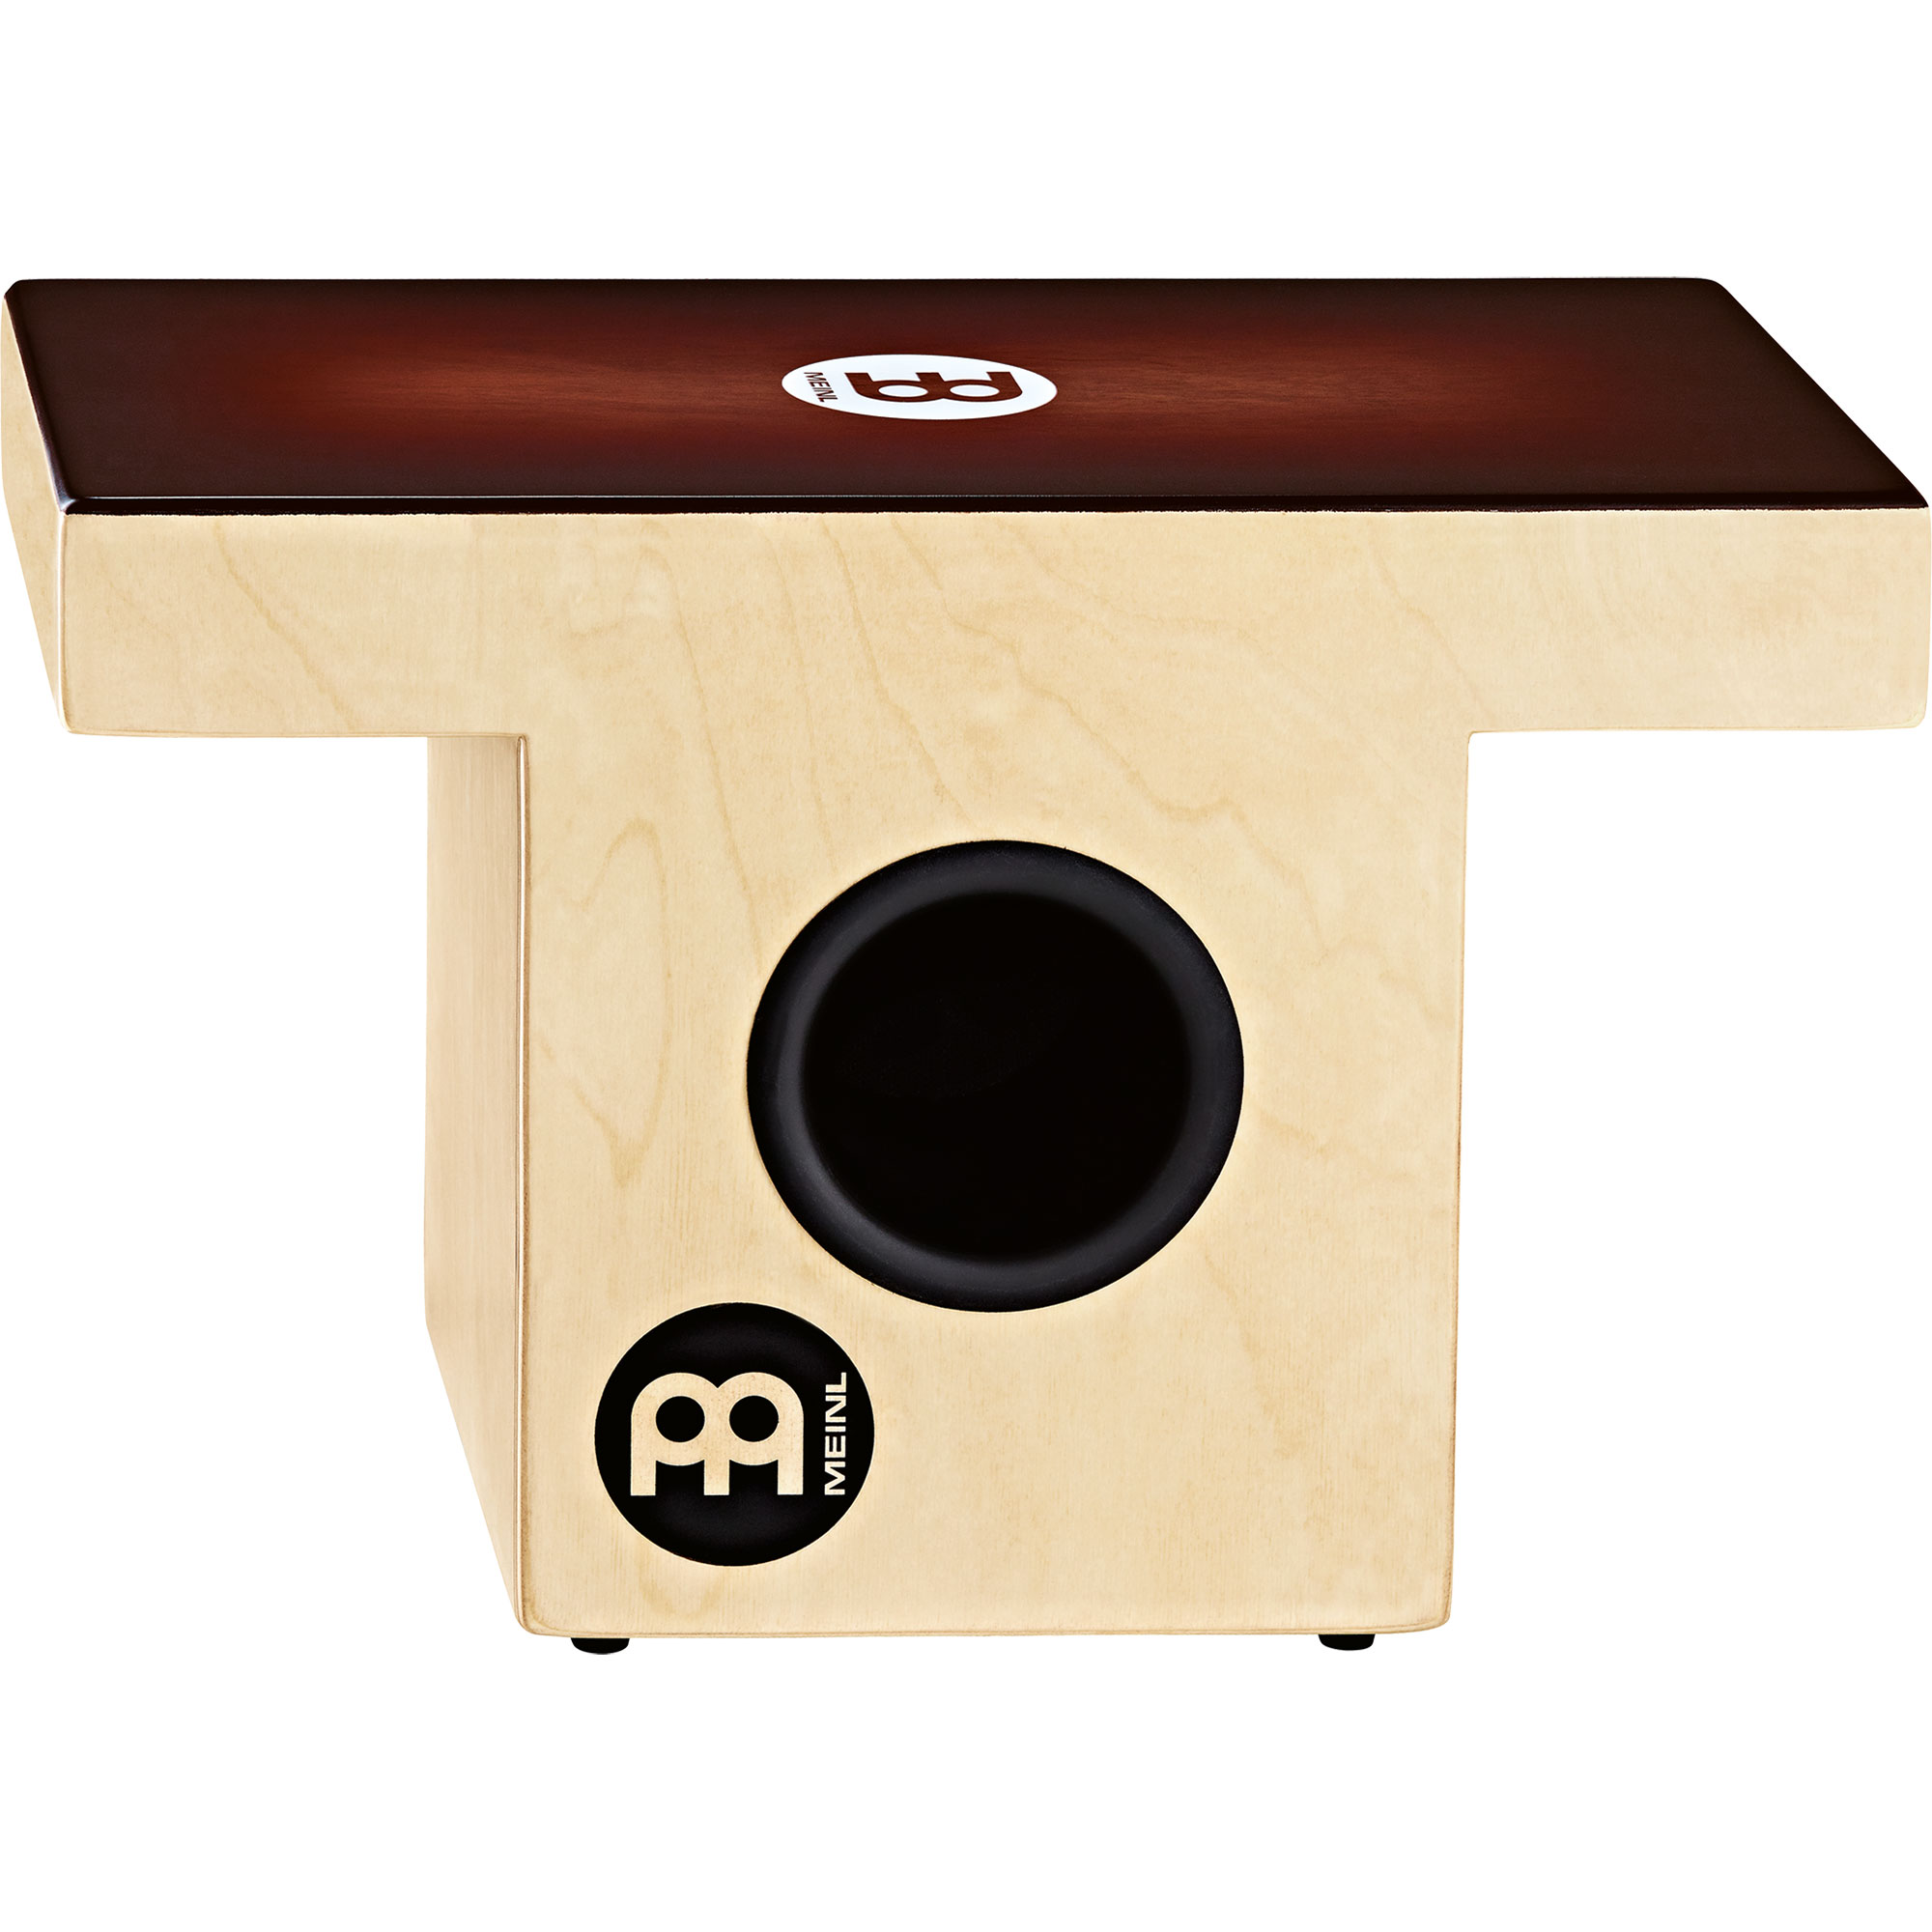 Meinl Slaptop Cajon in Espresso Brown